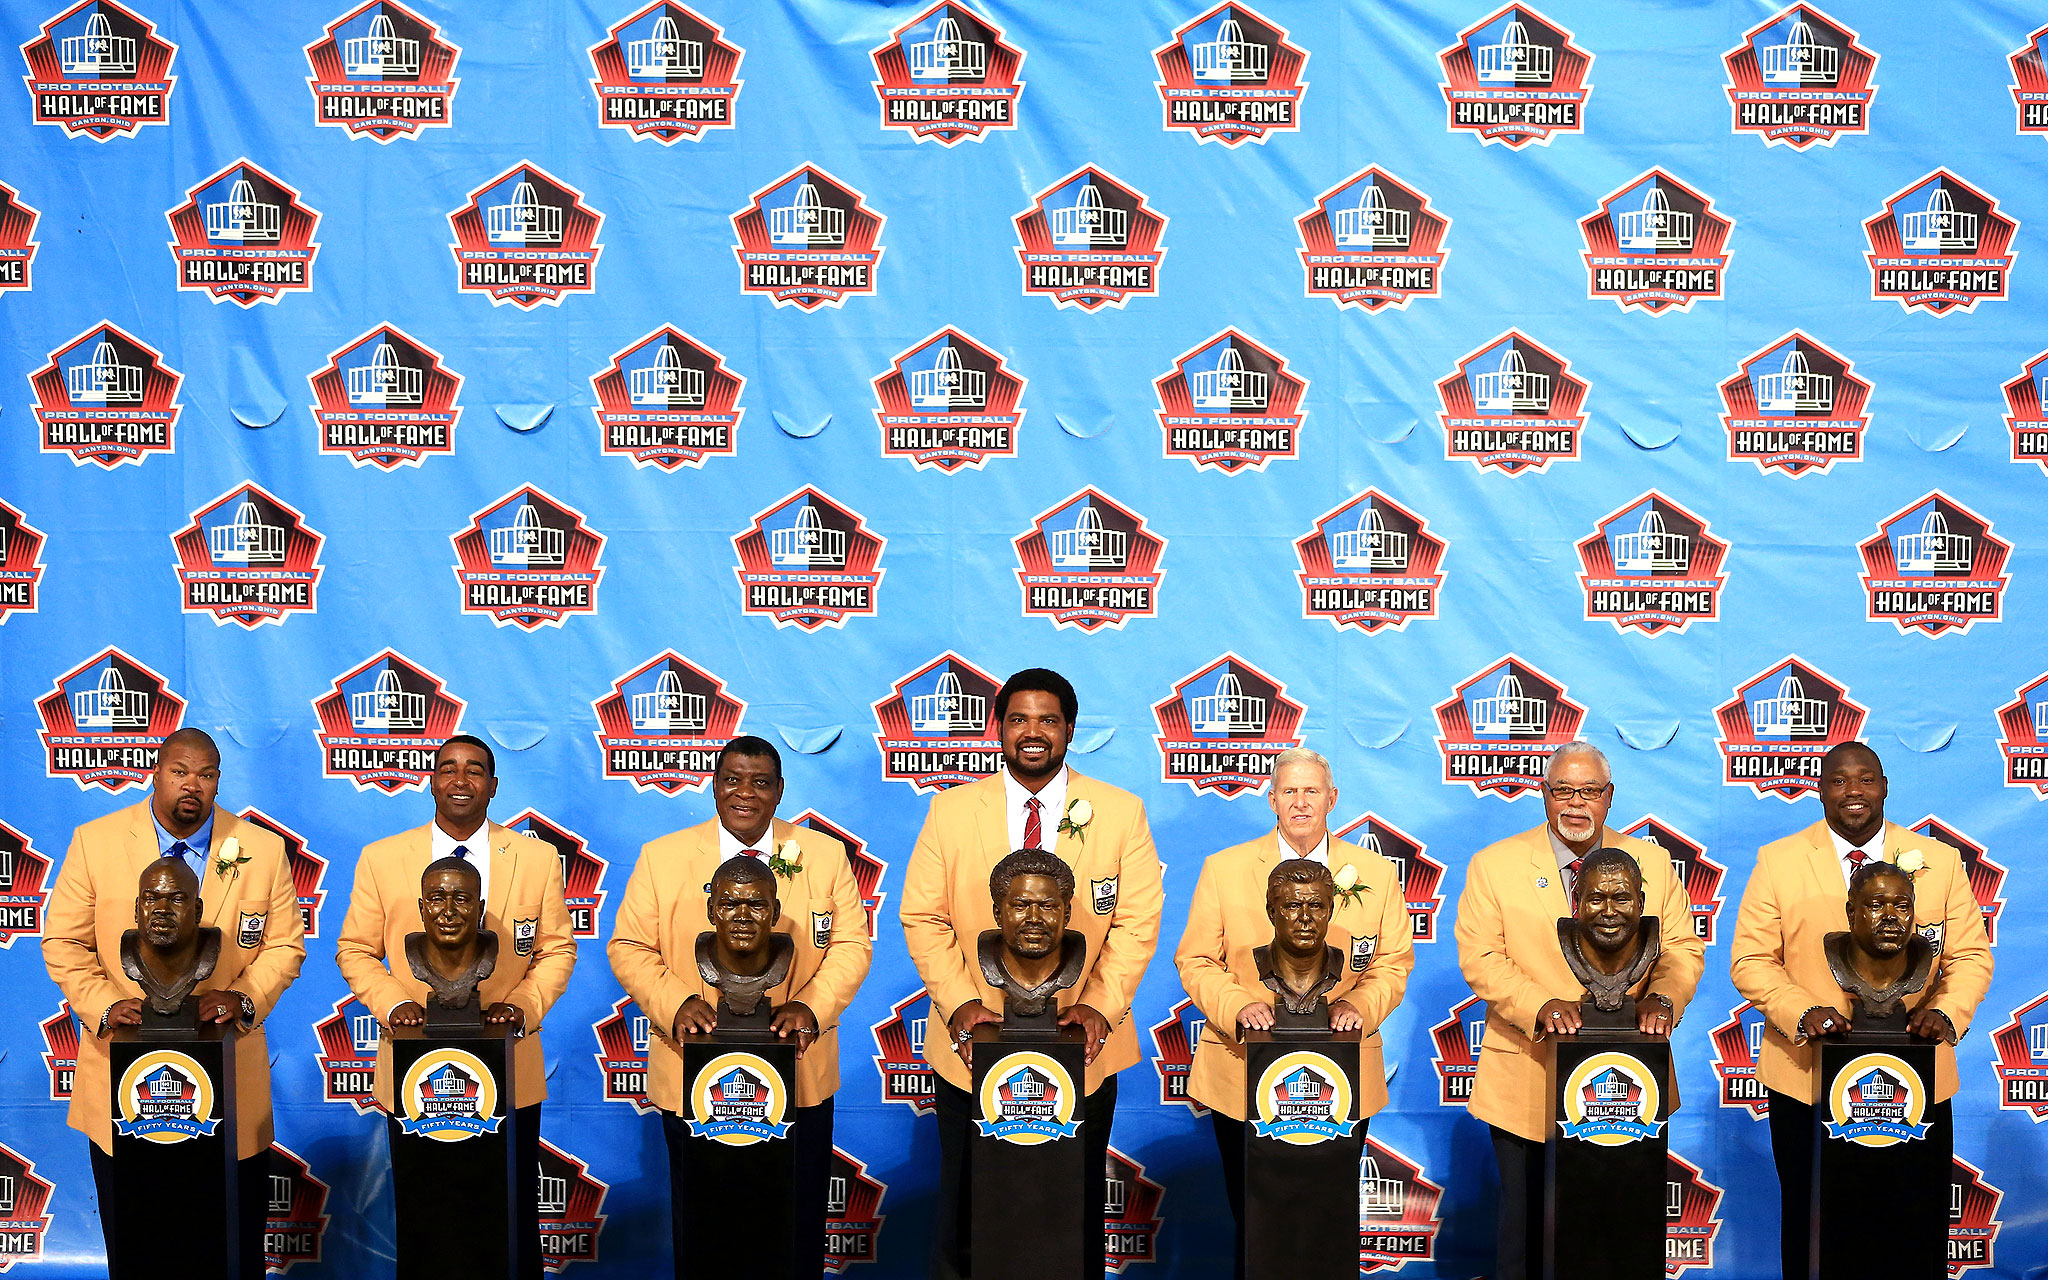 Pro Football Hall of Fame Class of 2013